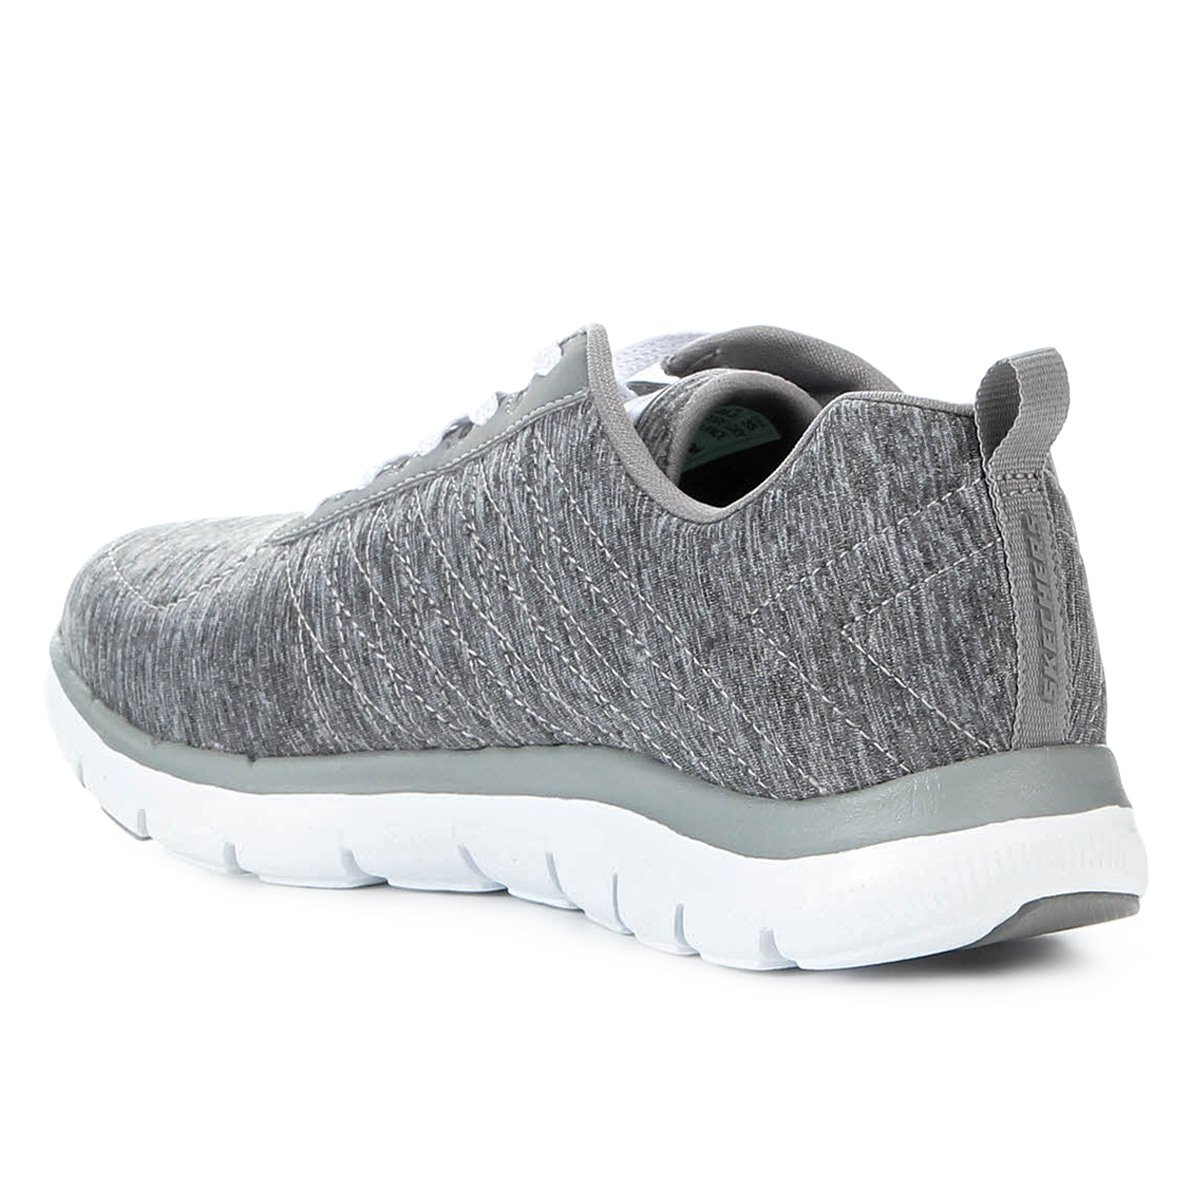 Tenis Skechers Flex Appeal 2.0 Gray